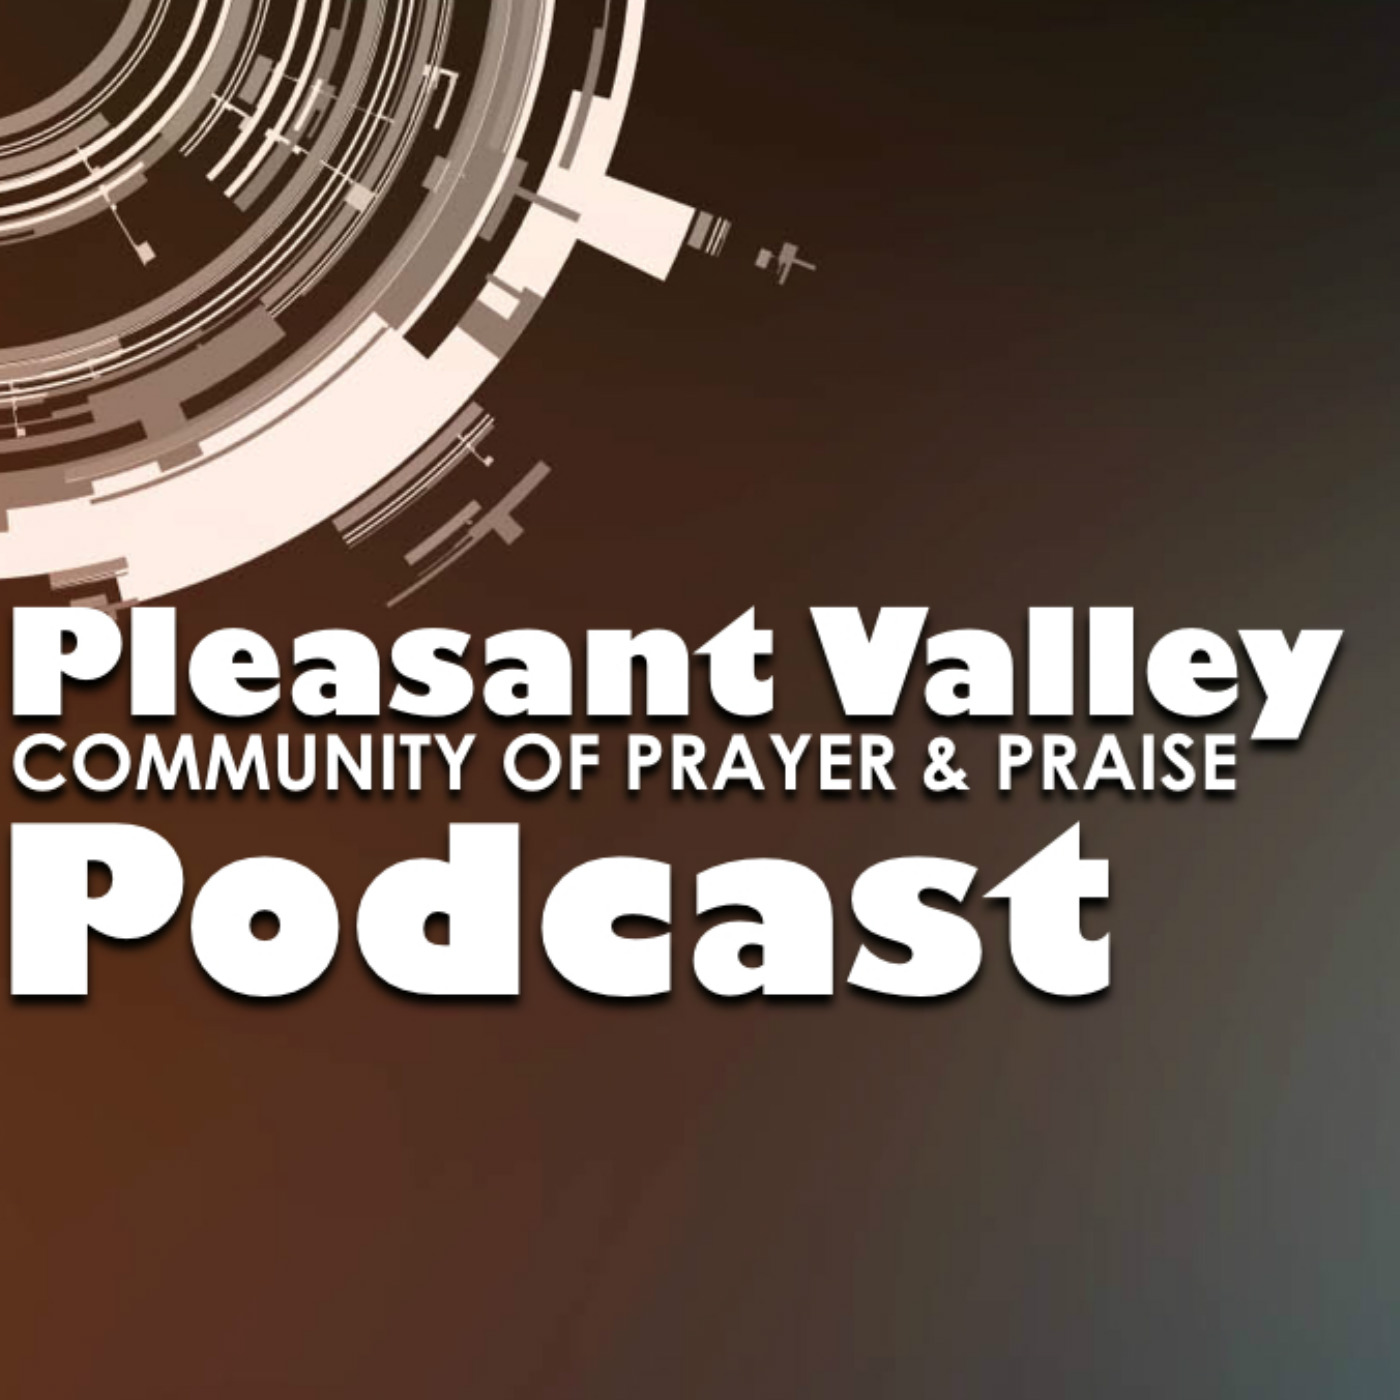 Pleasant Valley Community of Prayer & Praise